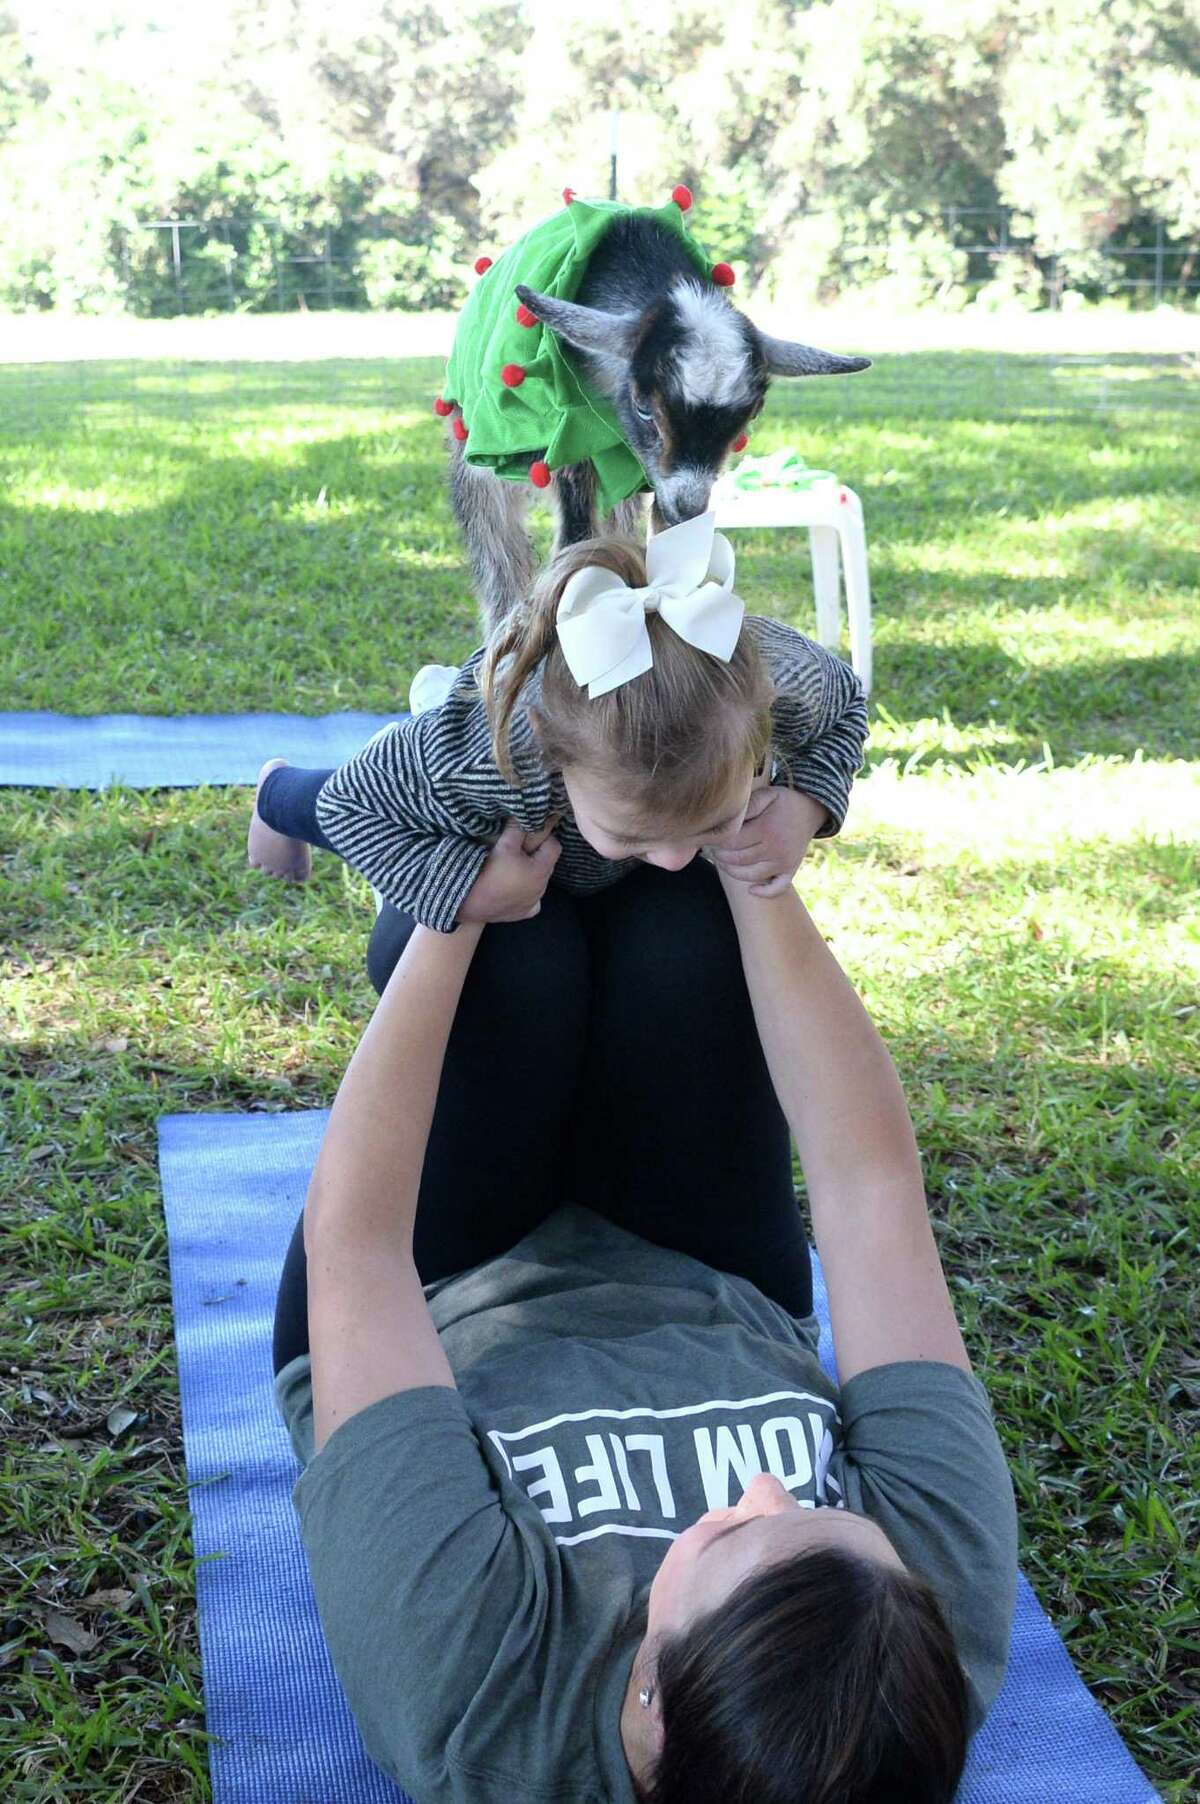 Goat Yoga Katy-Fulshear 7738 Katy Fulshear Road, Fulshear Those looking for a kid and animal-friendly workout can check out Goat Yoga in Fulshear.